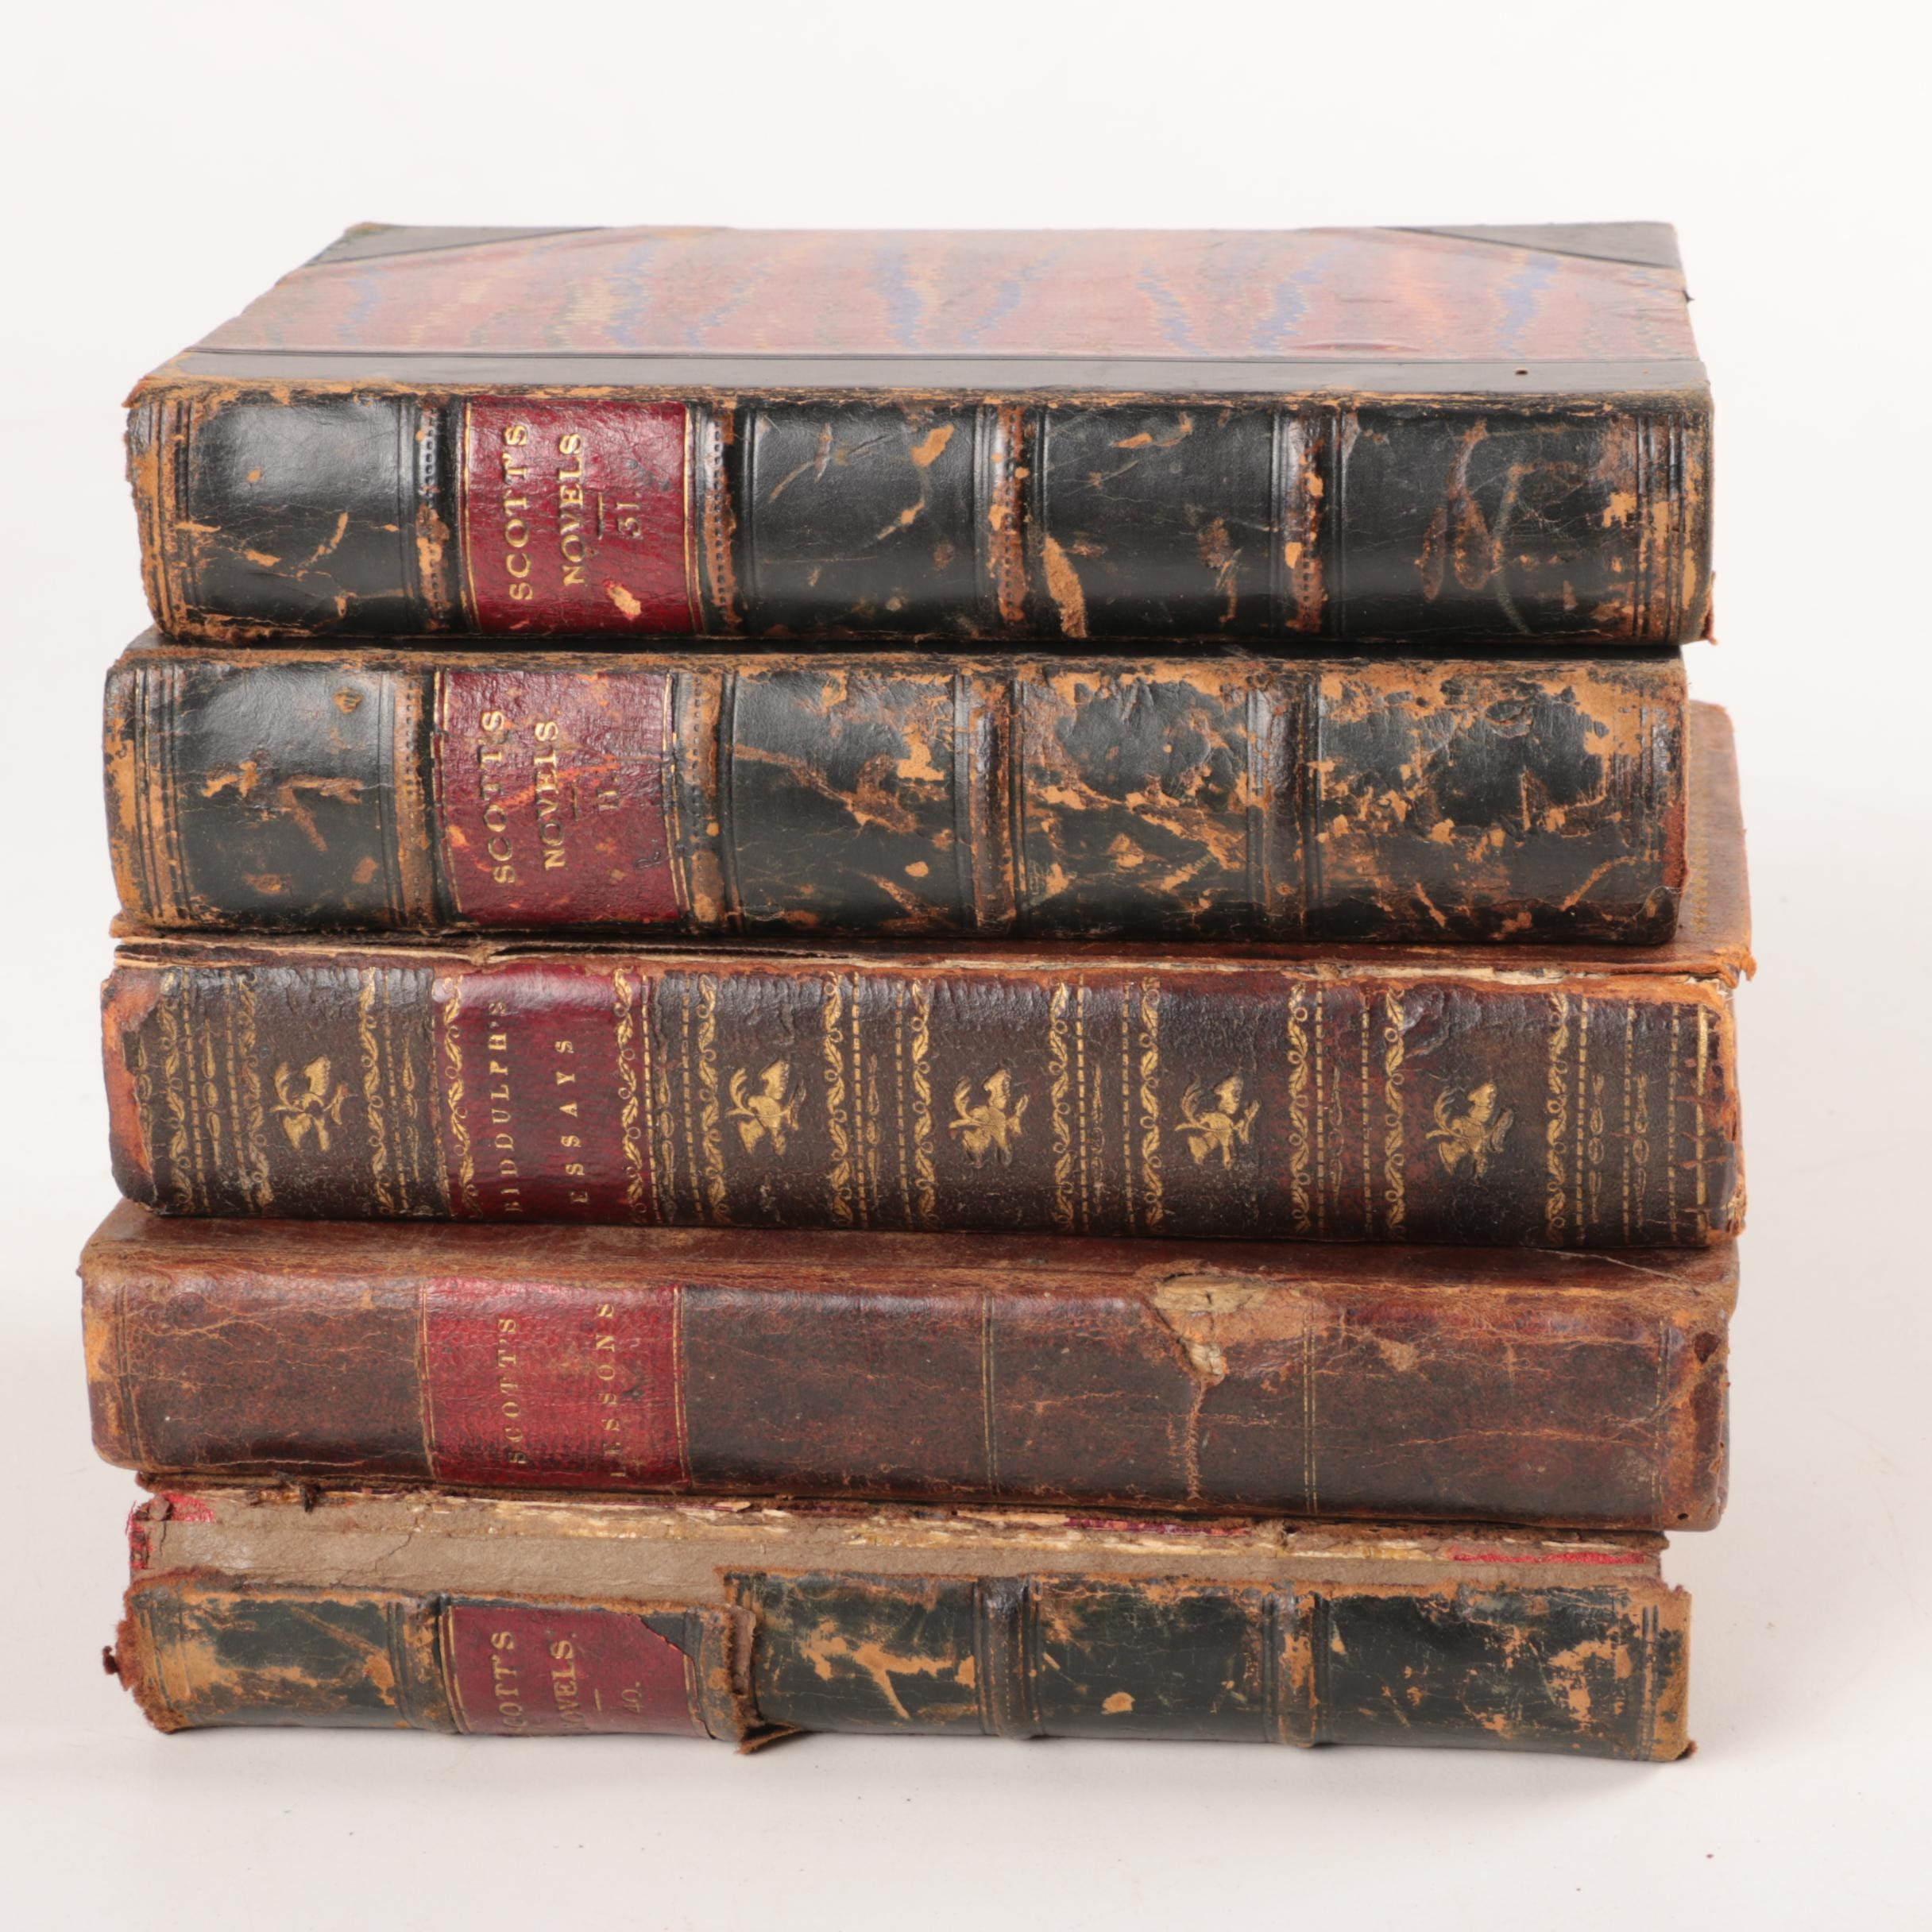 Antique Leather and Marbled Paper on Board Bound Books